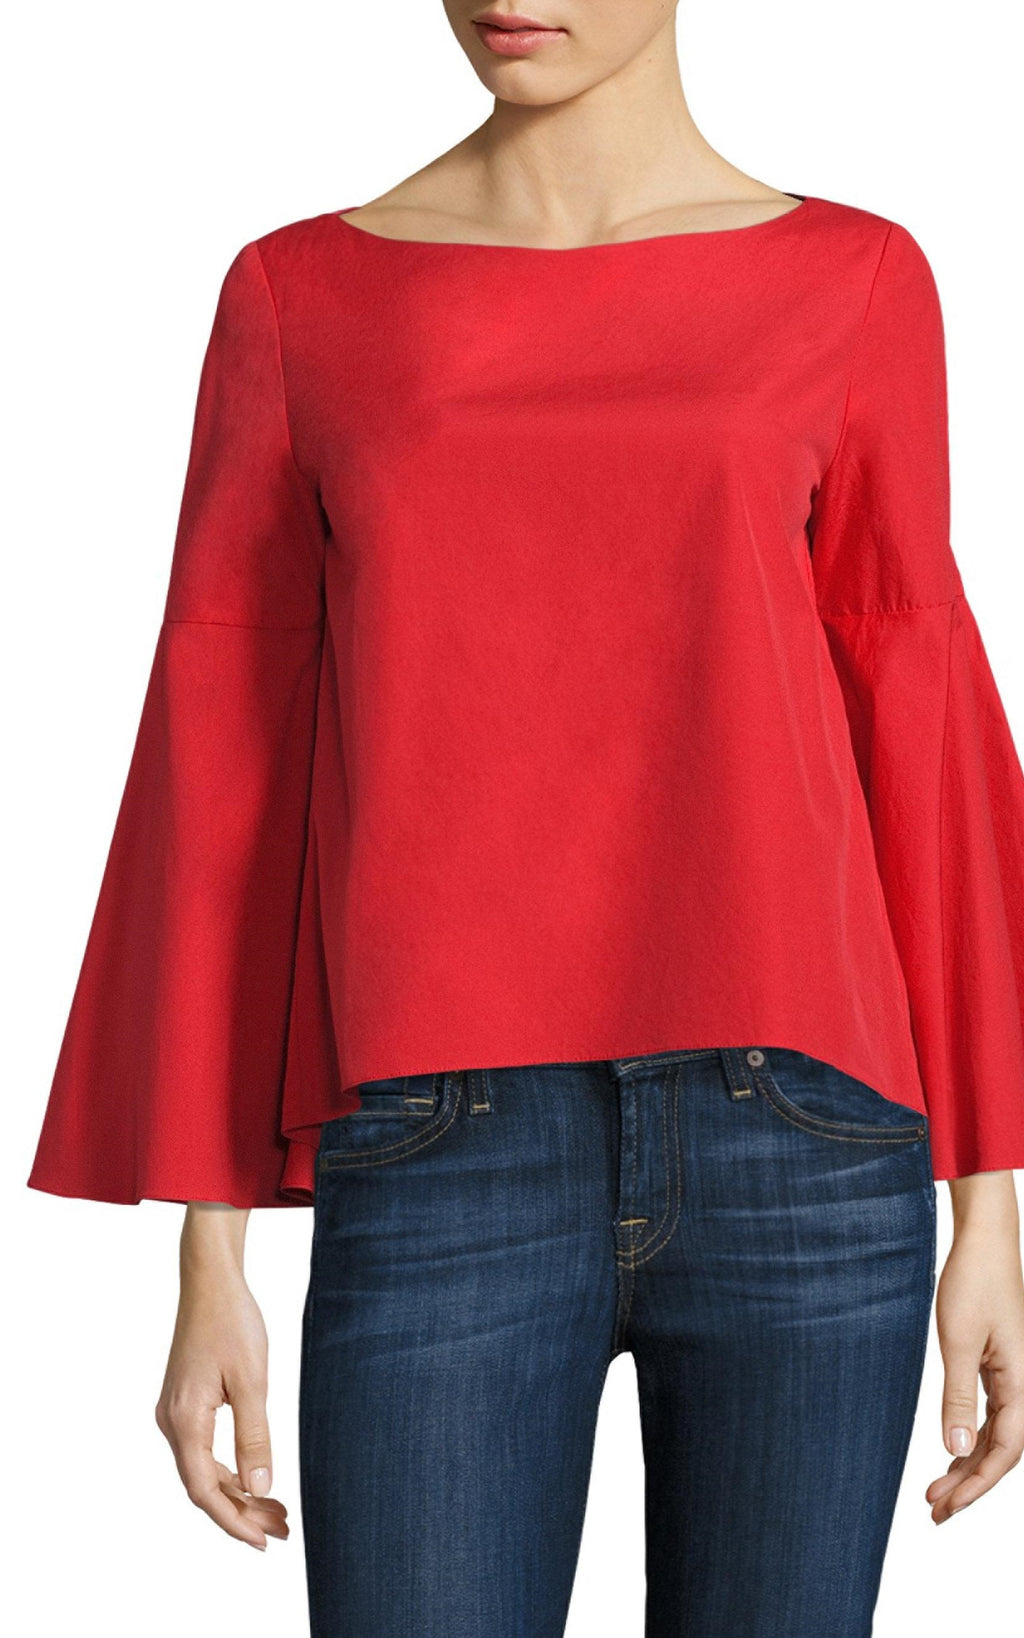 Alice + Olivia Bateau Neck 3/4 Red Sleeve Blouse